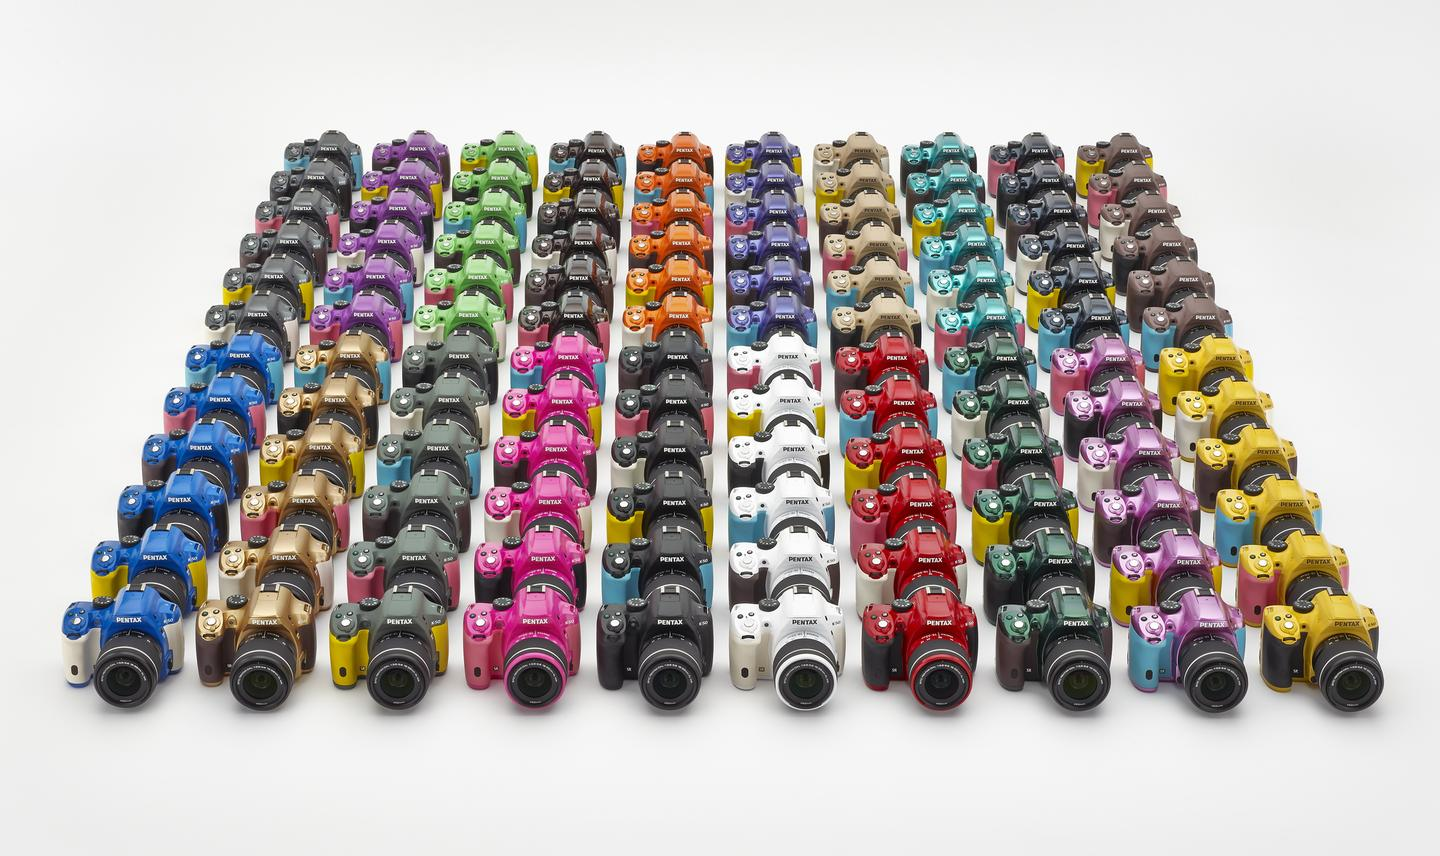 There are 20 body colors to choose from and six grip colors, with buyers being able to select from up to 120 combinations